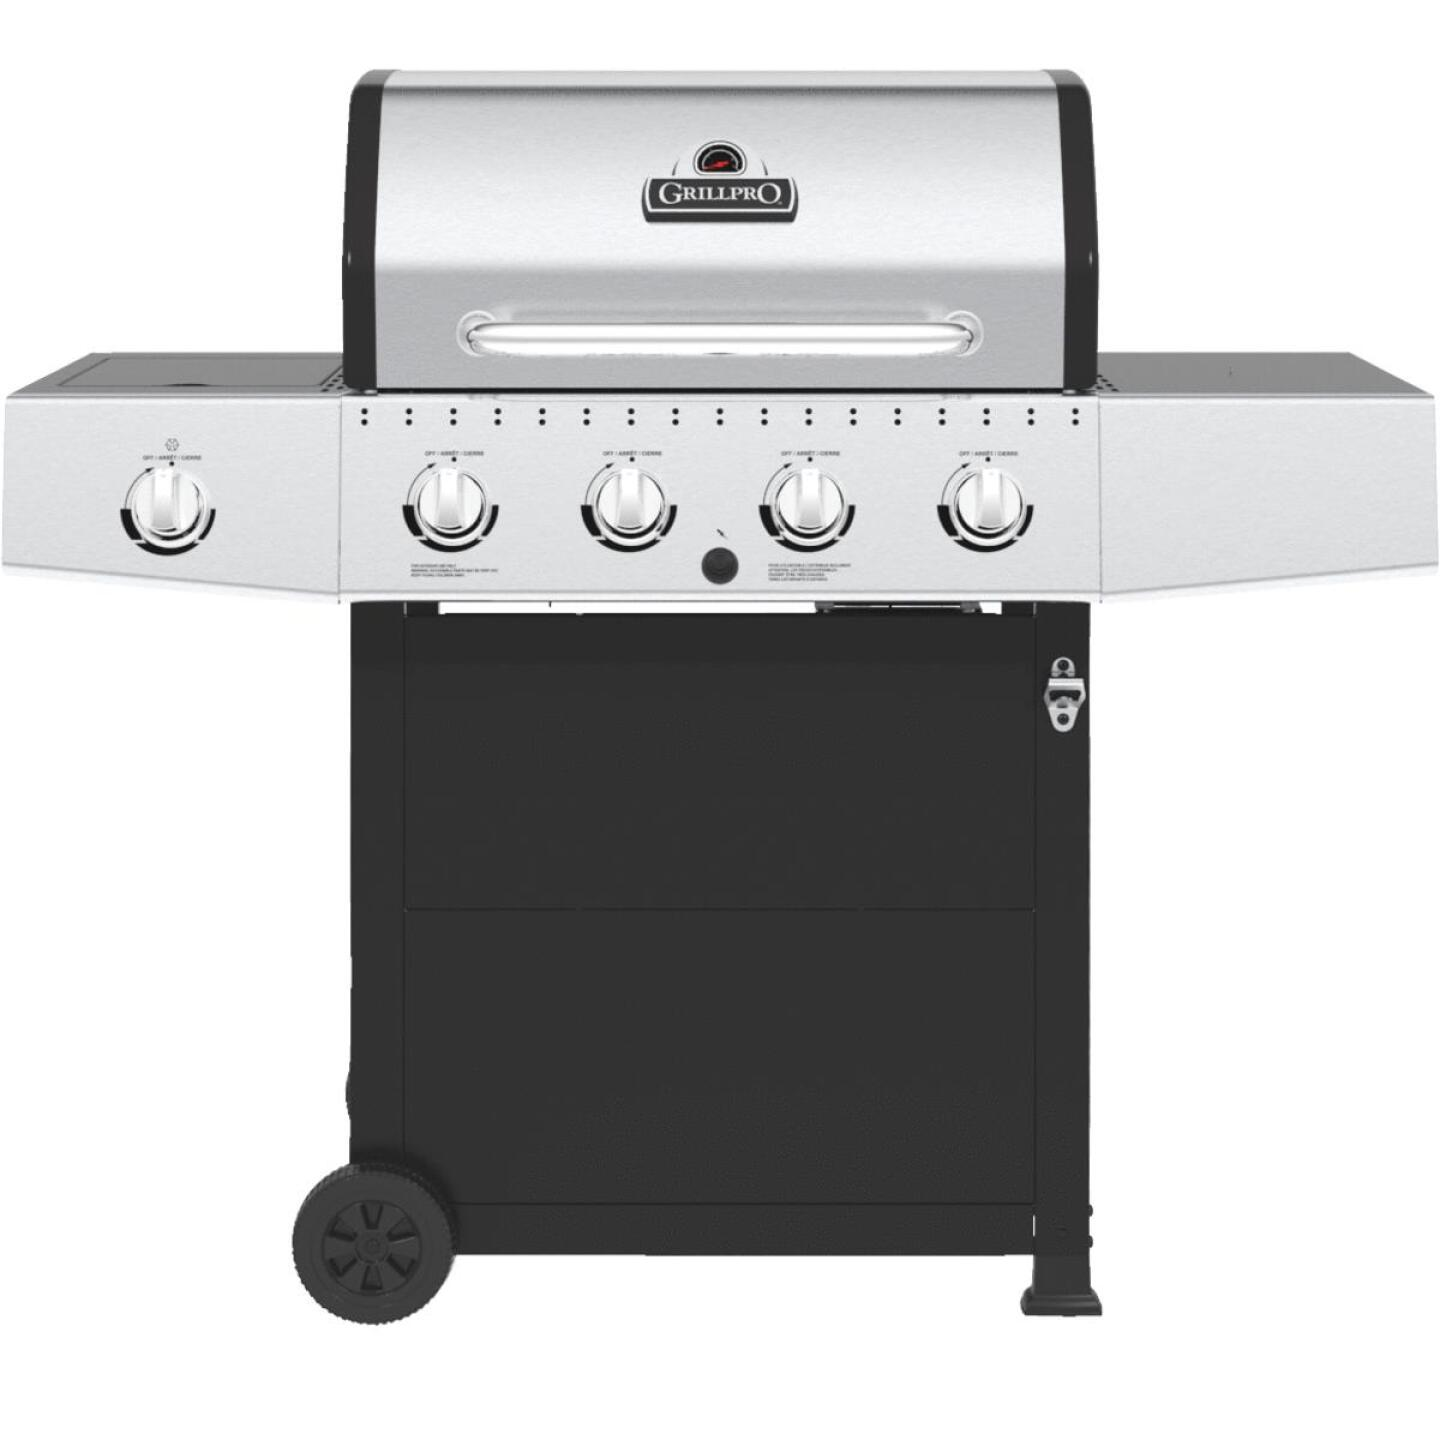 GrillPro 4-Burner Stainless Steel & Black 40,000 BTU LP Gas Grill Image 1